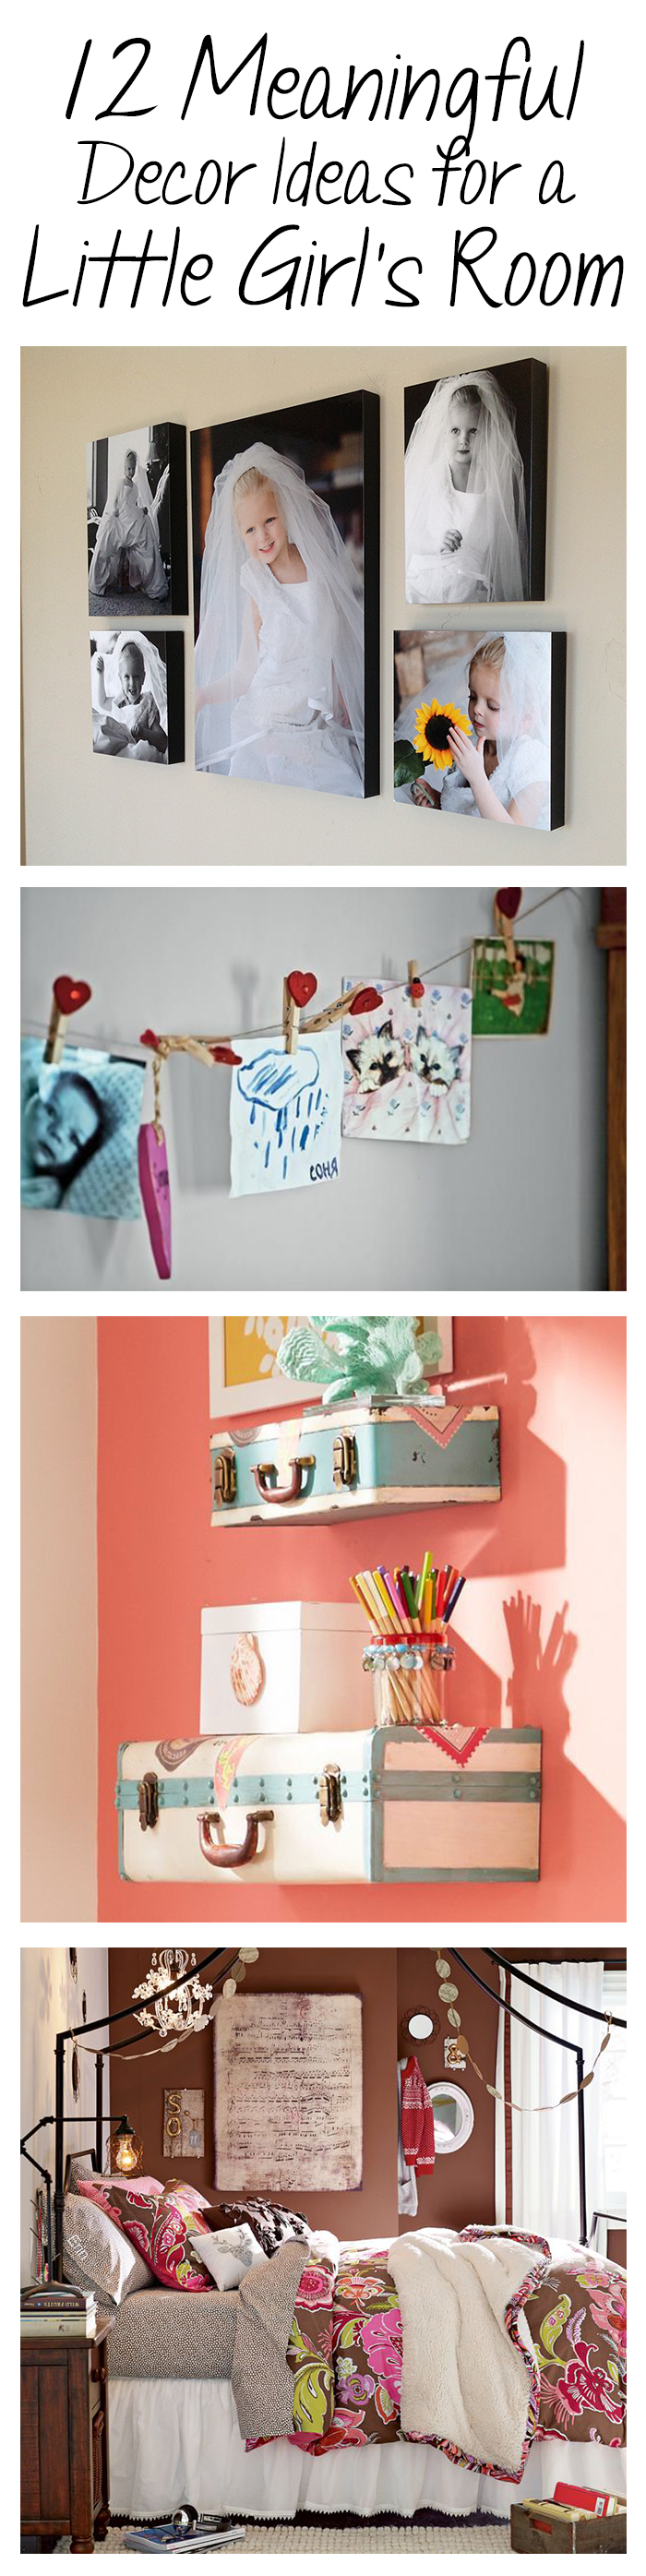 12 Meaningful Decor Ideas for a Little Girl's Room